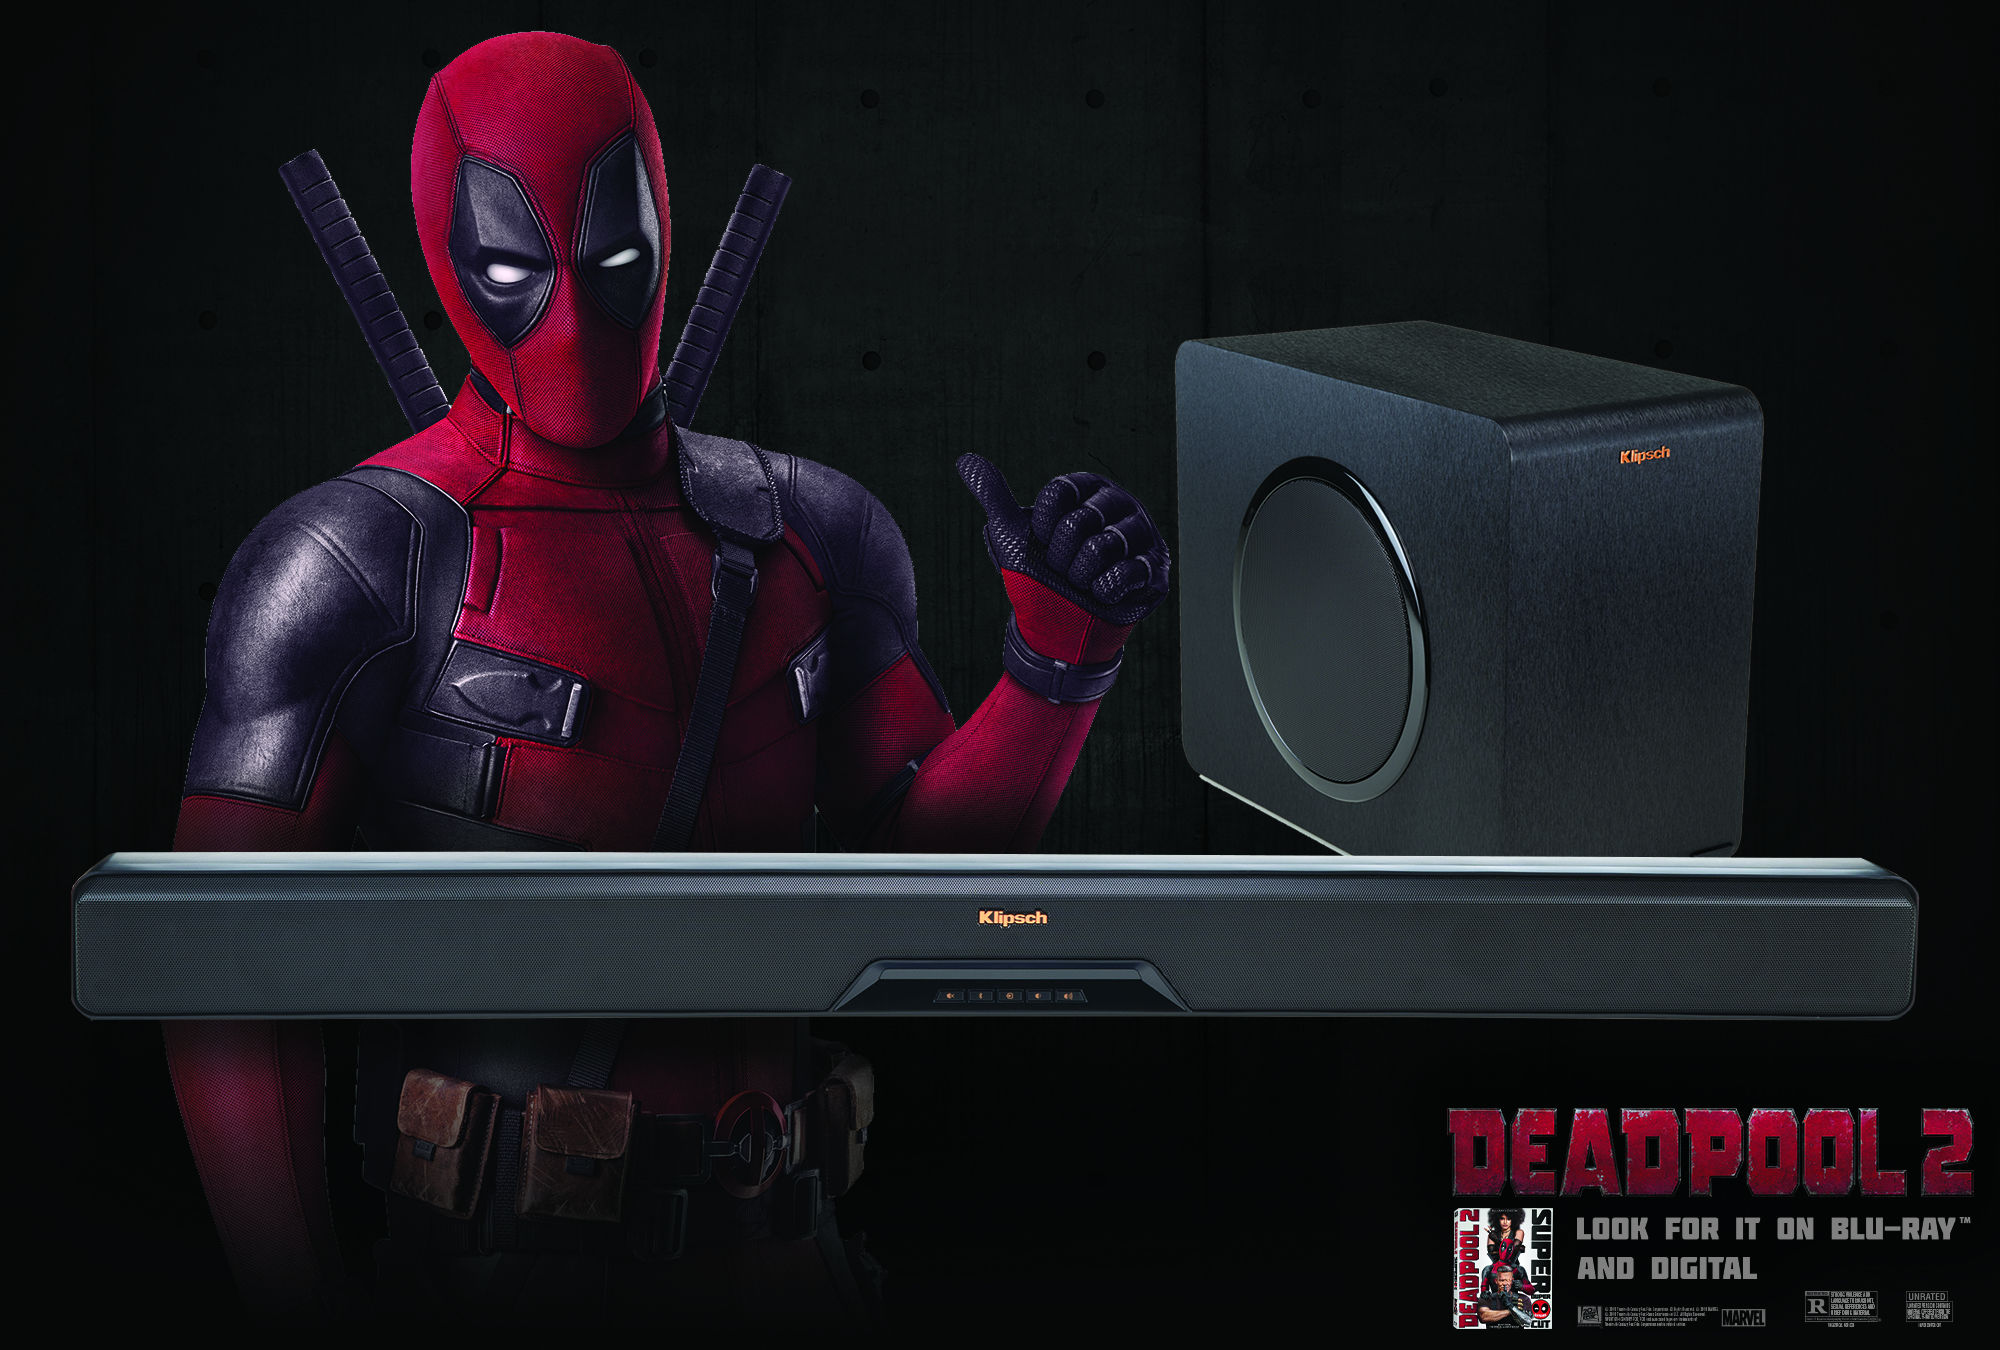 B Deadpool 2 Soundbar